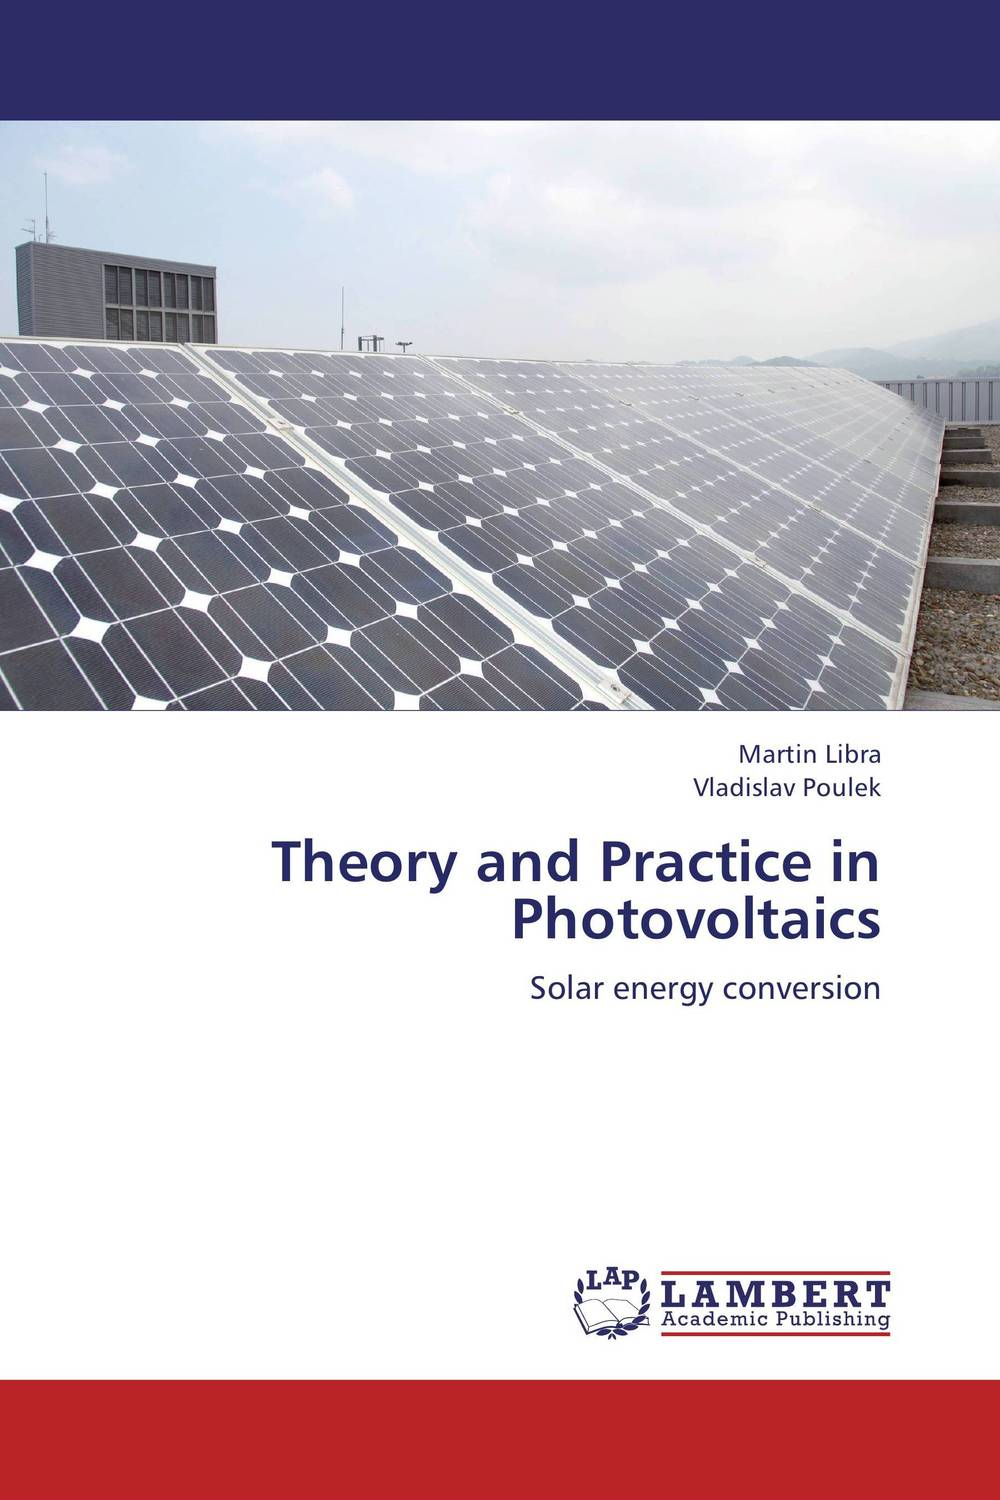 Theory and Practice in Photovoltaics theory and practice of secrecy focus on okonko and ogboni in africa